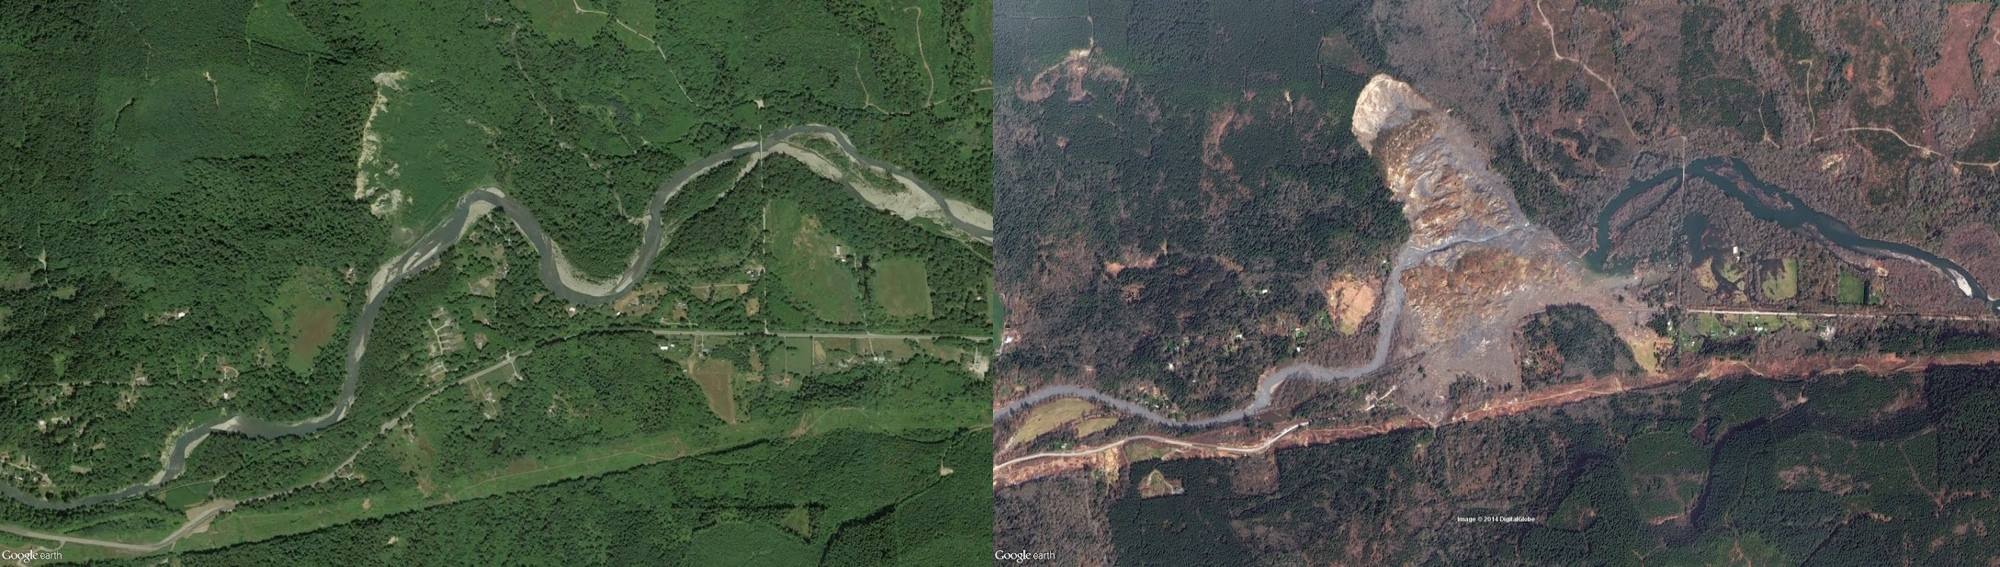 Washington Mudslide Devastation Seen from Space (Before and After Photos)